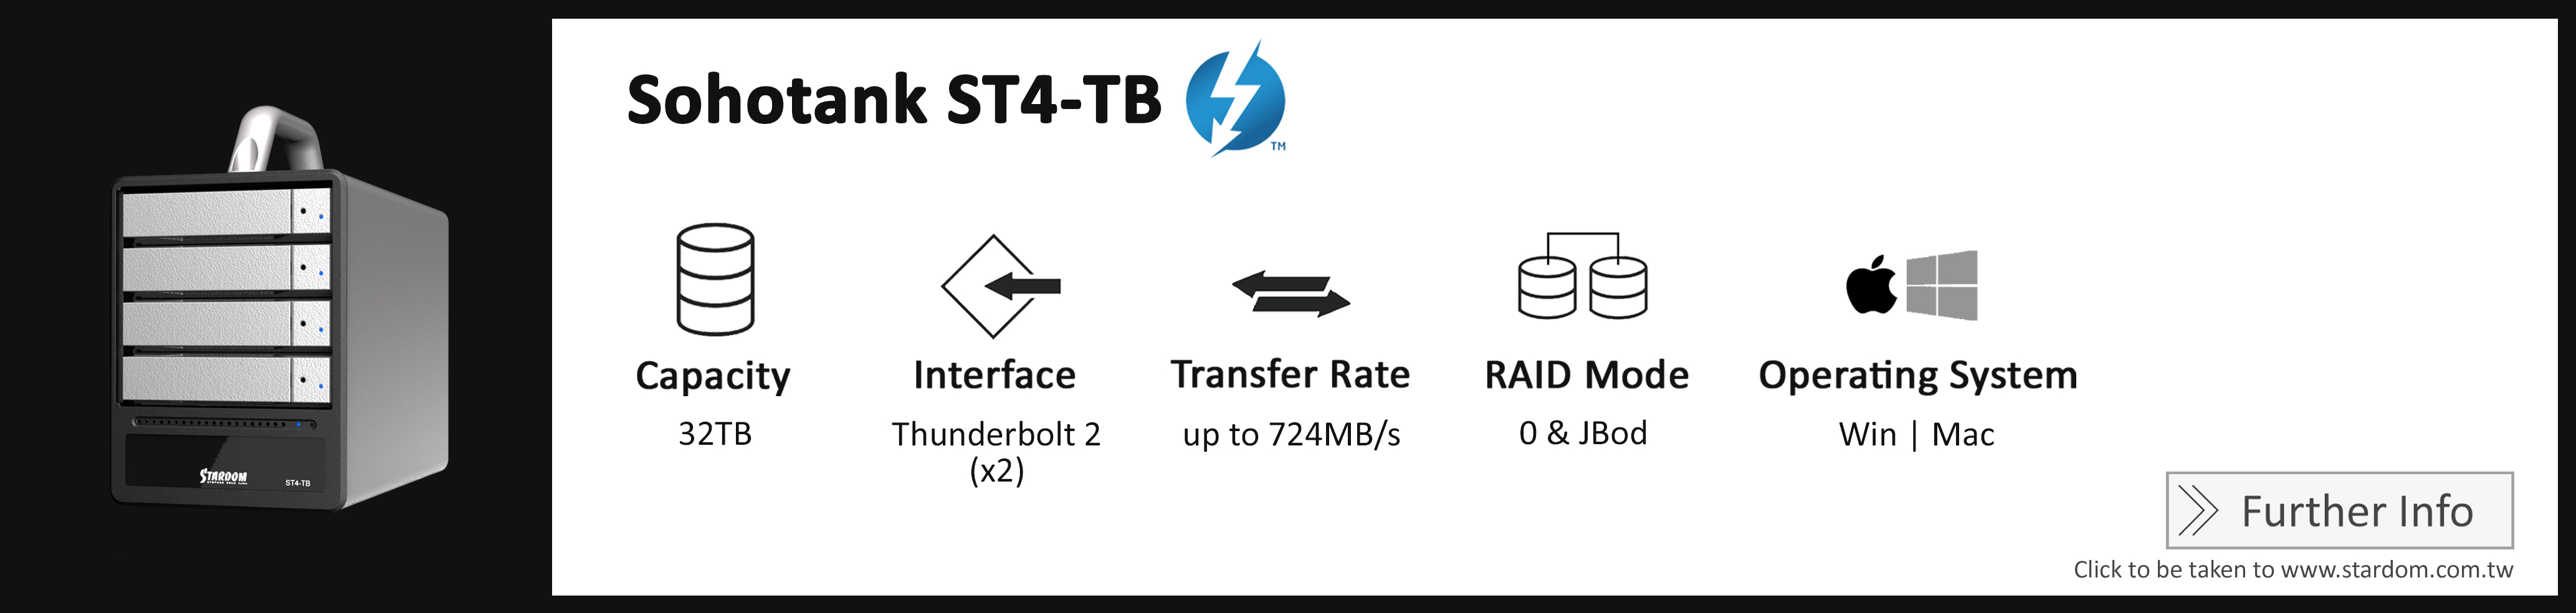 Stardom_ST4-TB_Cost Effective RAID Storage